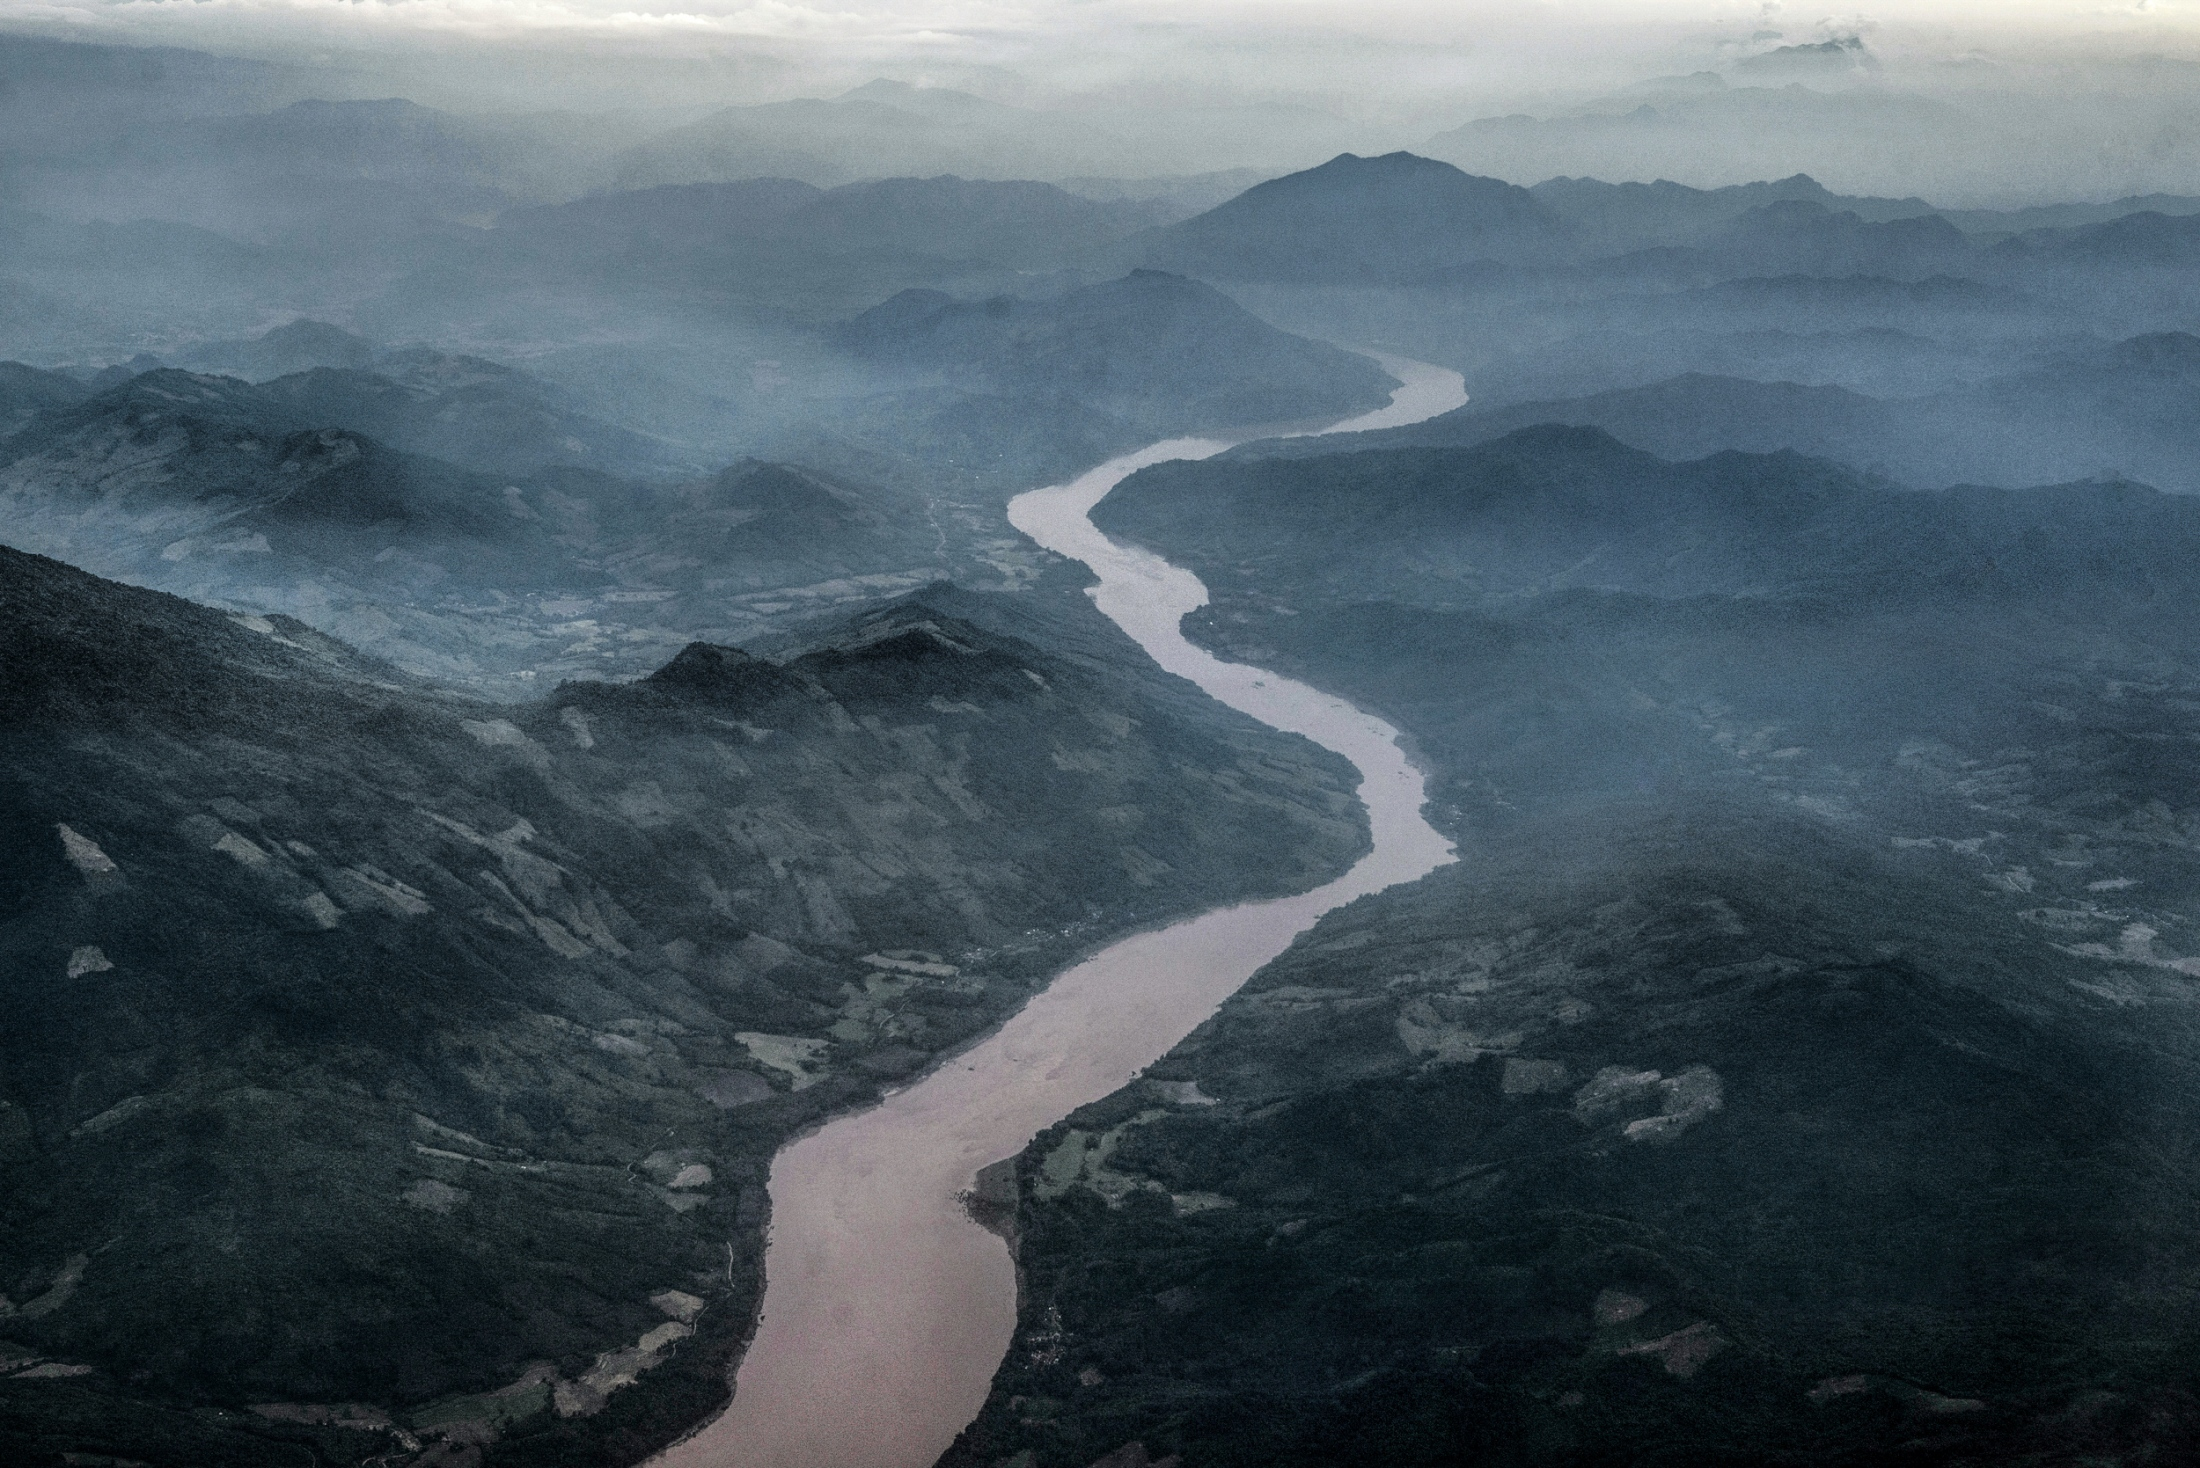 The Mekong River, the 12th longest river in the world is under threat by a total of 11 large hydropower dams planned to be built by the governments of Laos, Thailand, Vietnam and Cambodia, while China has already completed five dams on the upper reaches of the Mekong while the other three are under construction. It is believed that these hydropower dams are likely to cause integrated environmental impacts and more than 60 million people in the Lower Mekong will have to face threats related to Climate Change. November 2, 2017.